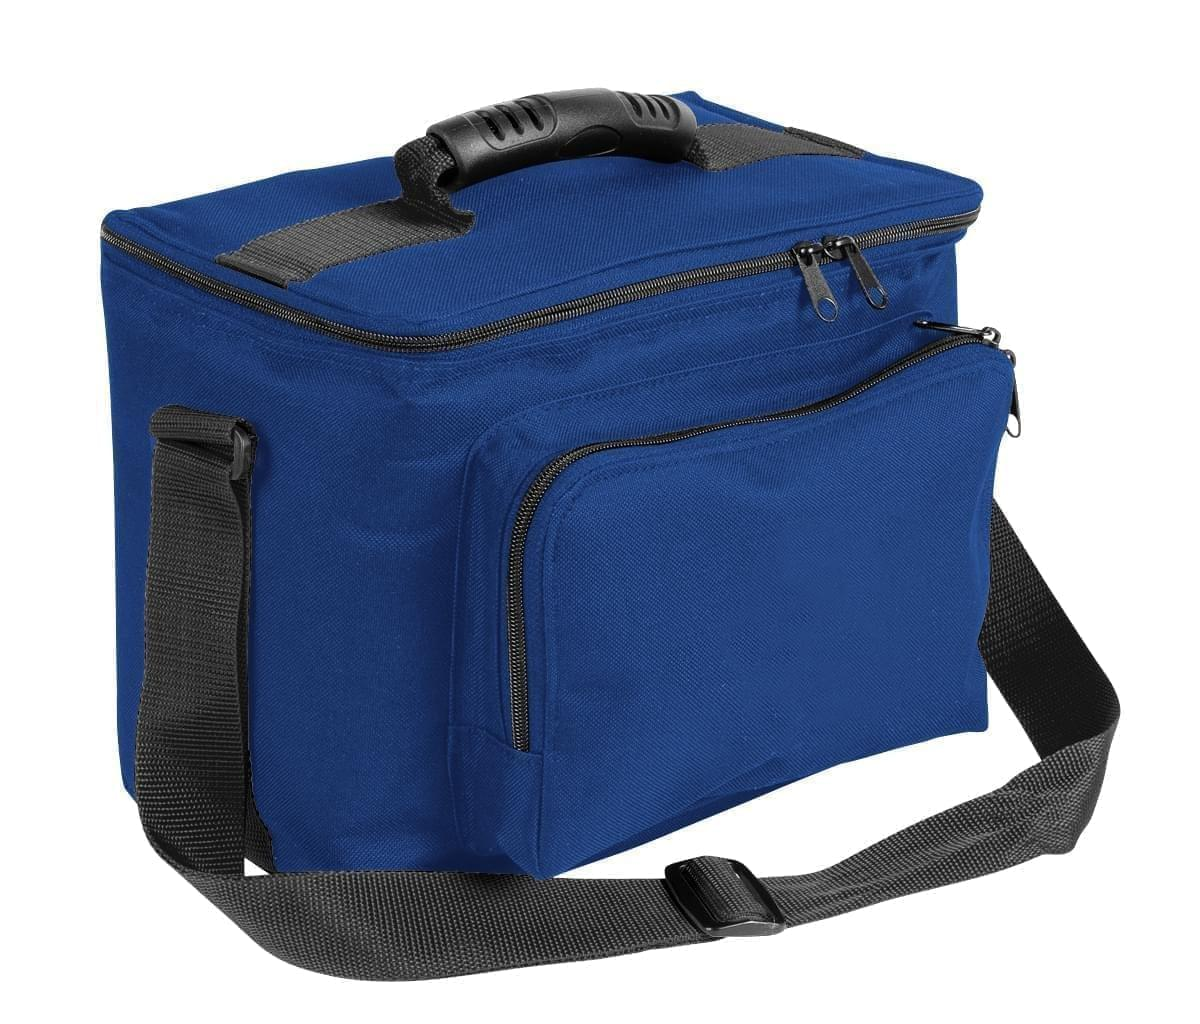 USA Made Nylon Poly Lunch Coolers, Royal Blue-Black, 11001161-A0R